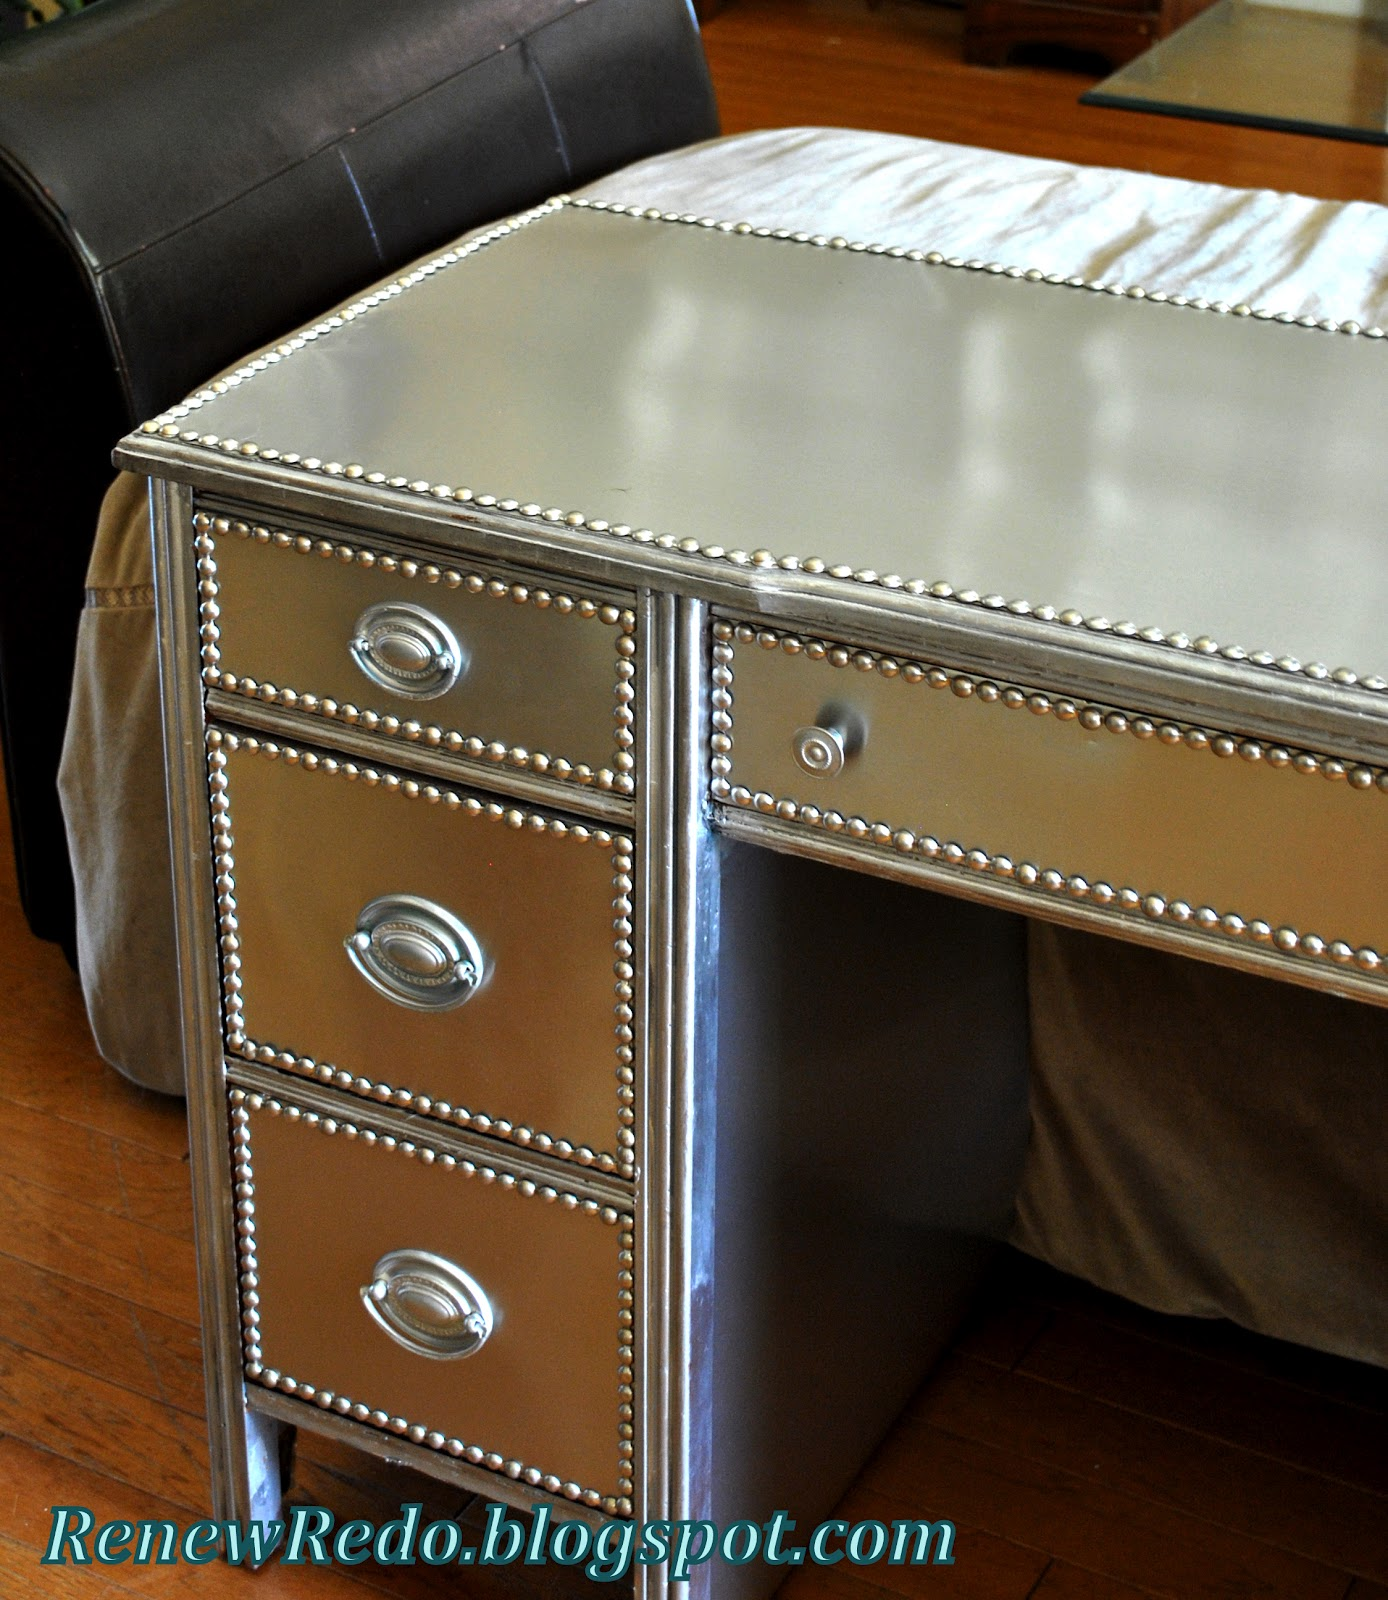 Renew Redo Stainless Steel Look Furniture How To